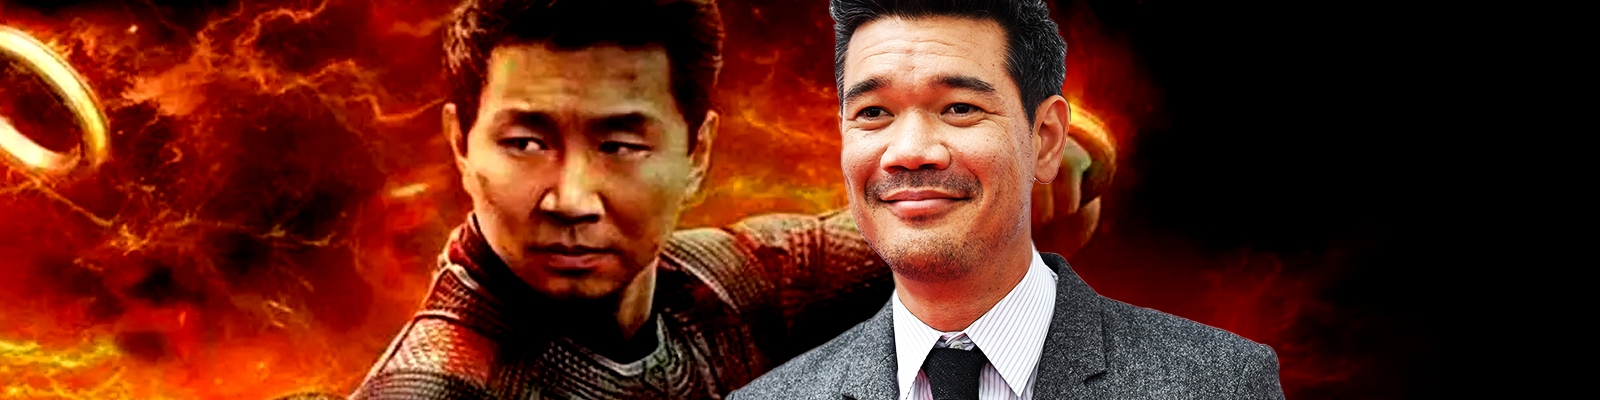 'Shang-Chi' Director Destin Daniel Cretton Deserves His Victory Lap After What It Took To Make This Marvel Movie